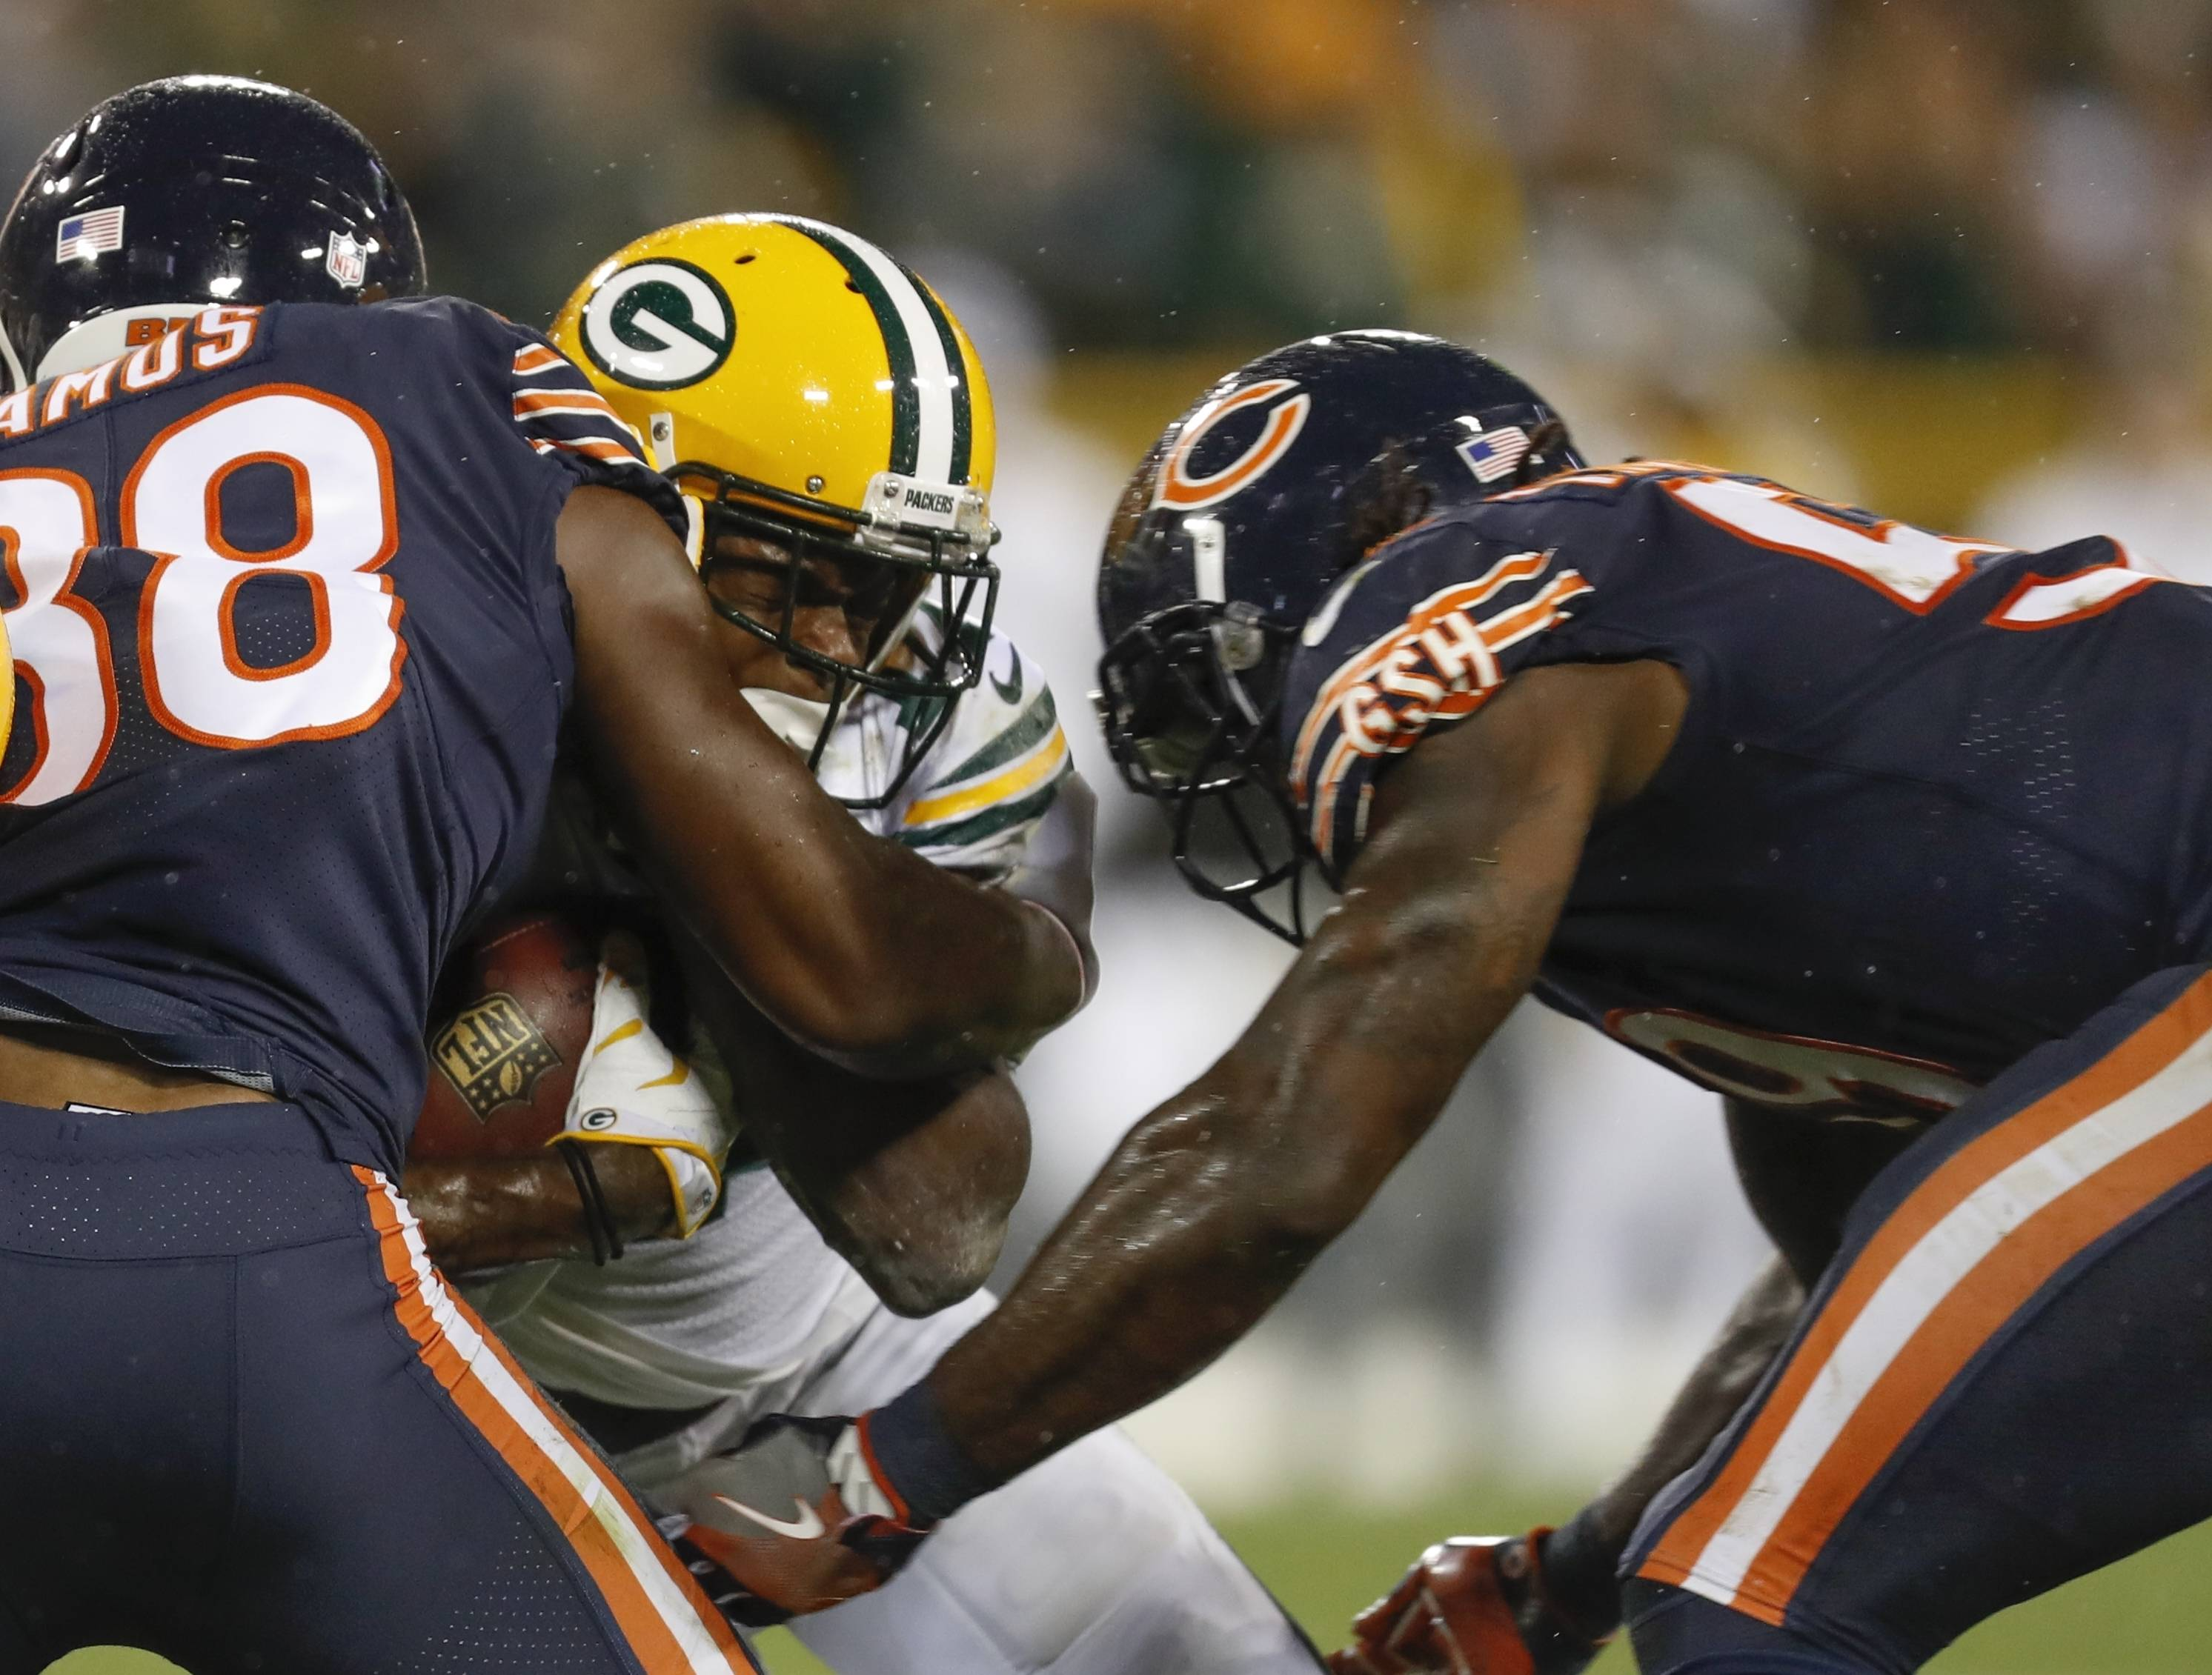 Bears' LB Trevathan suspended without pay for two games